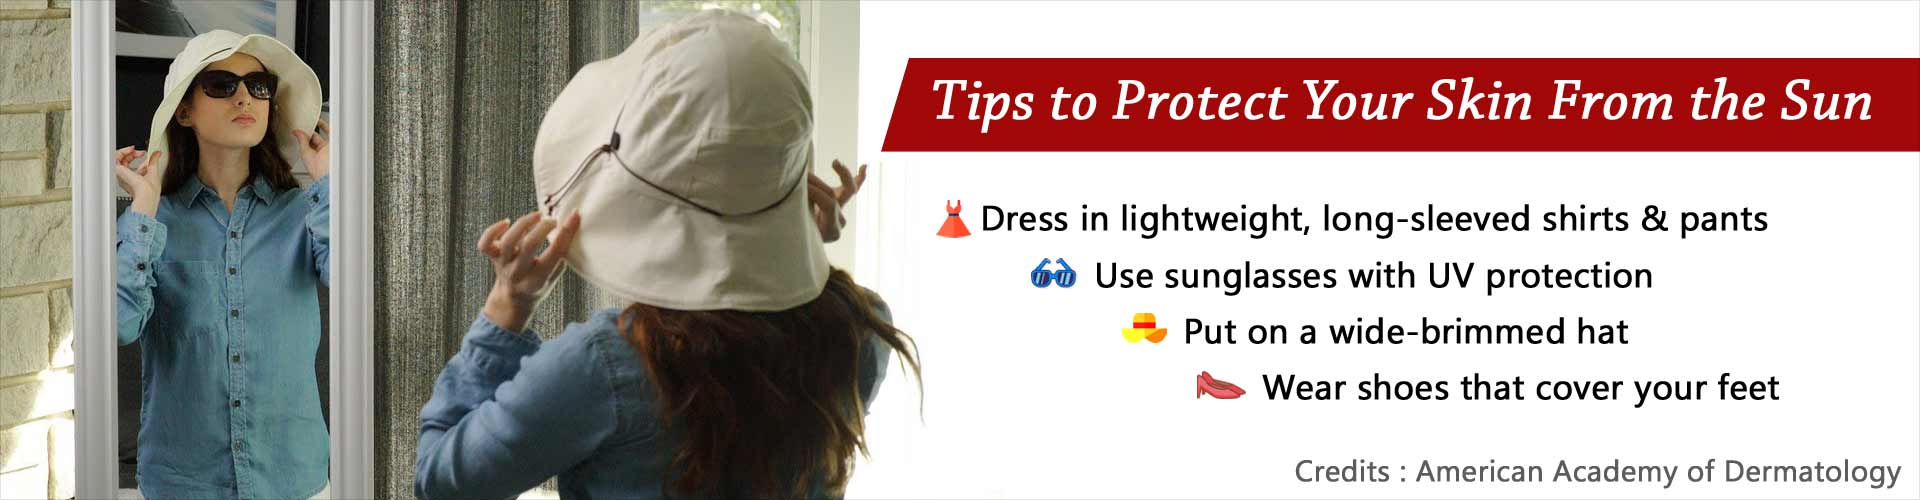 Four Ways to Protect Your Skin from the Sun